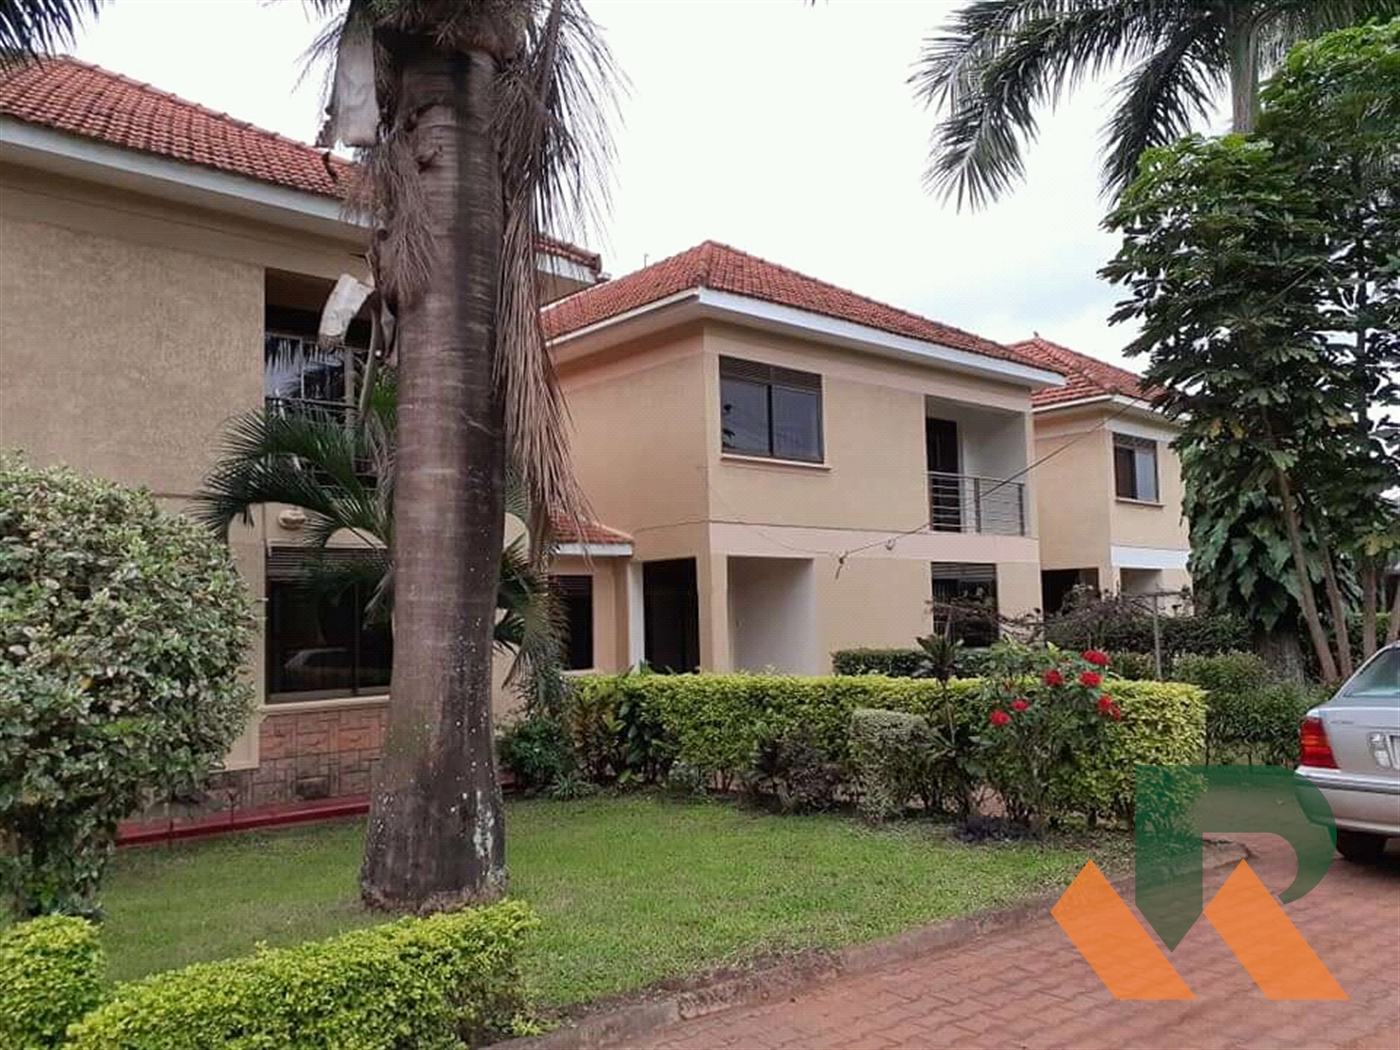 Storyed house for rent in Lugogo Kampala